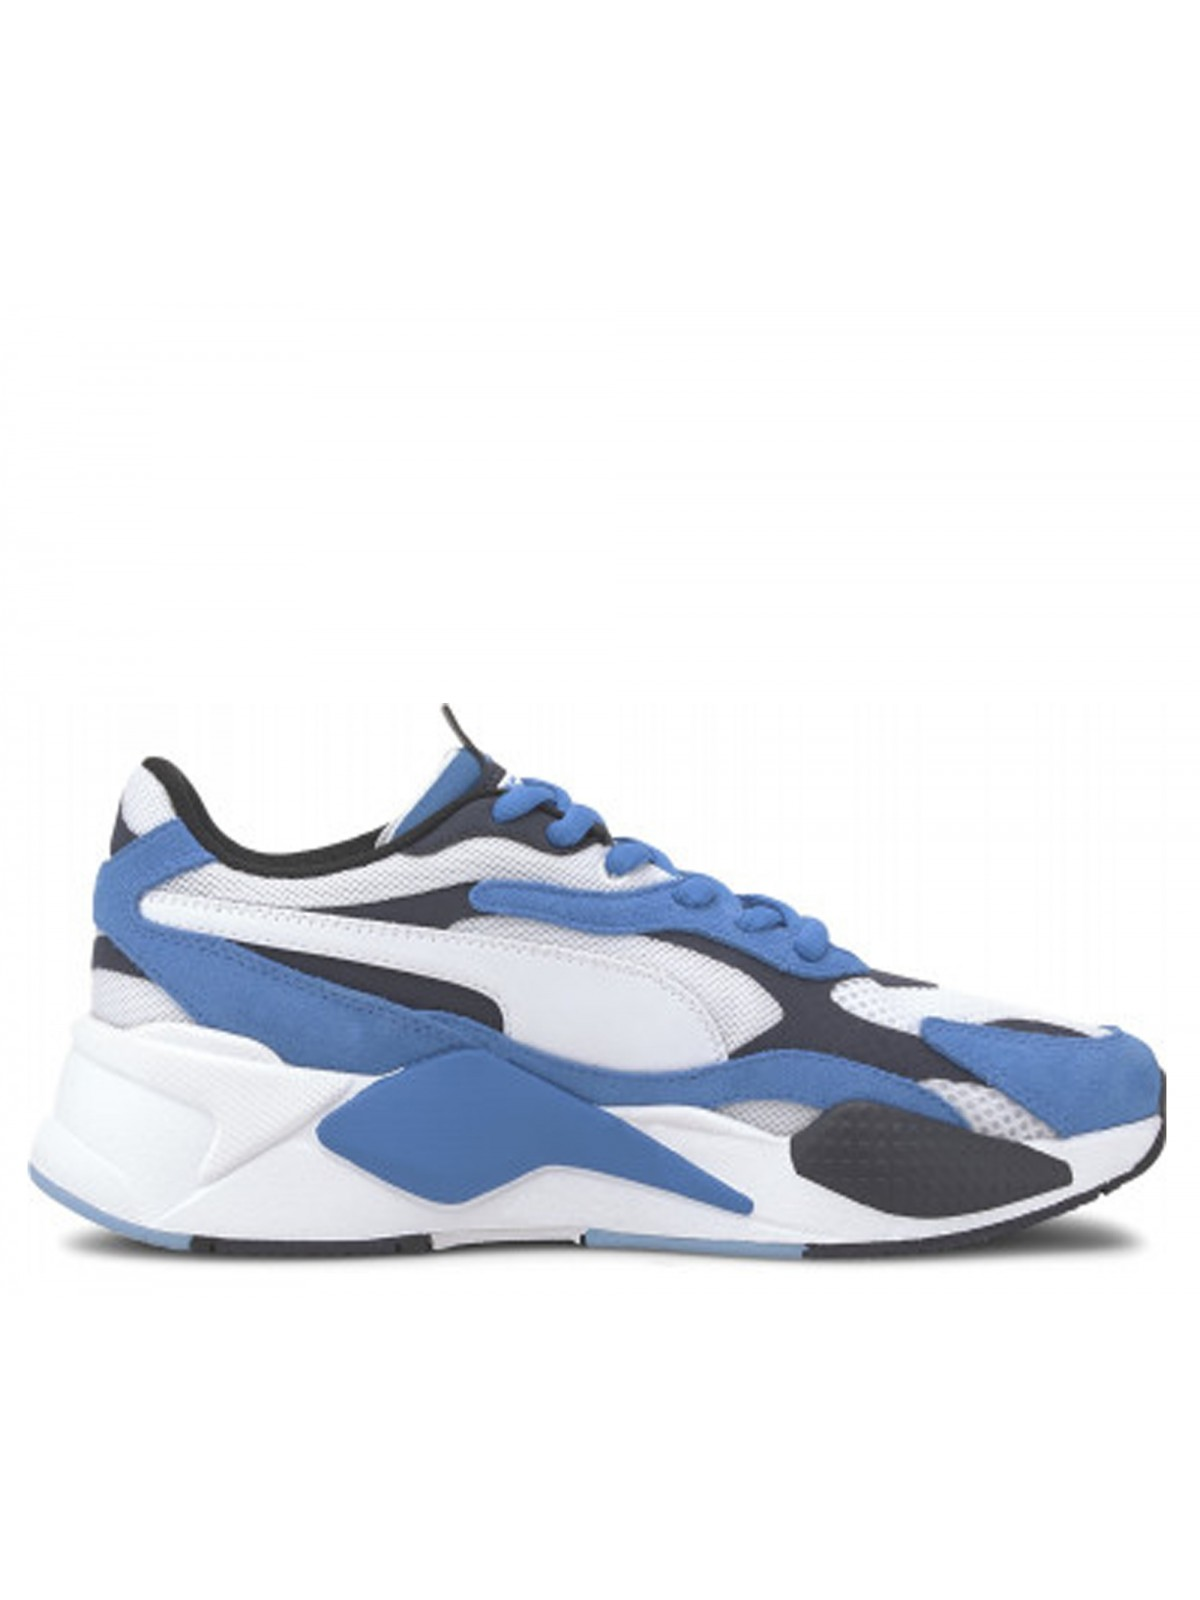 Puma RSX Play blue